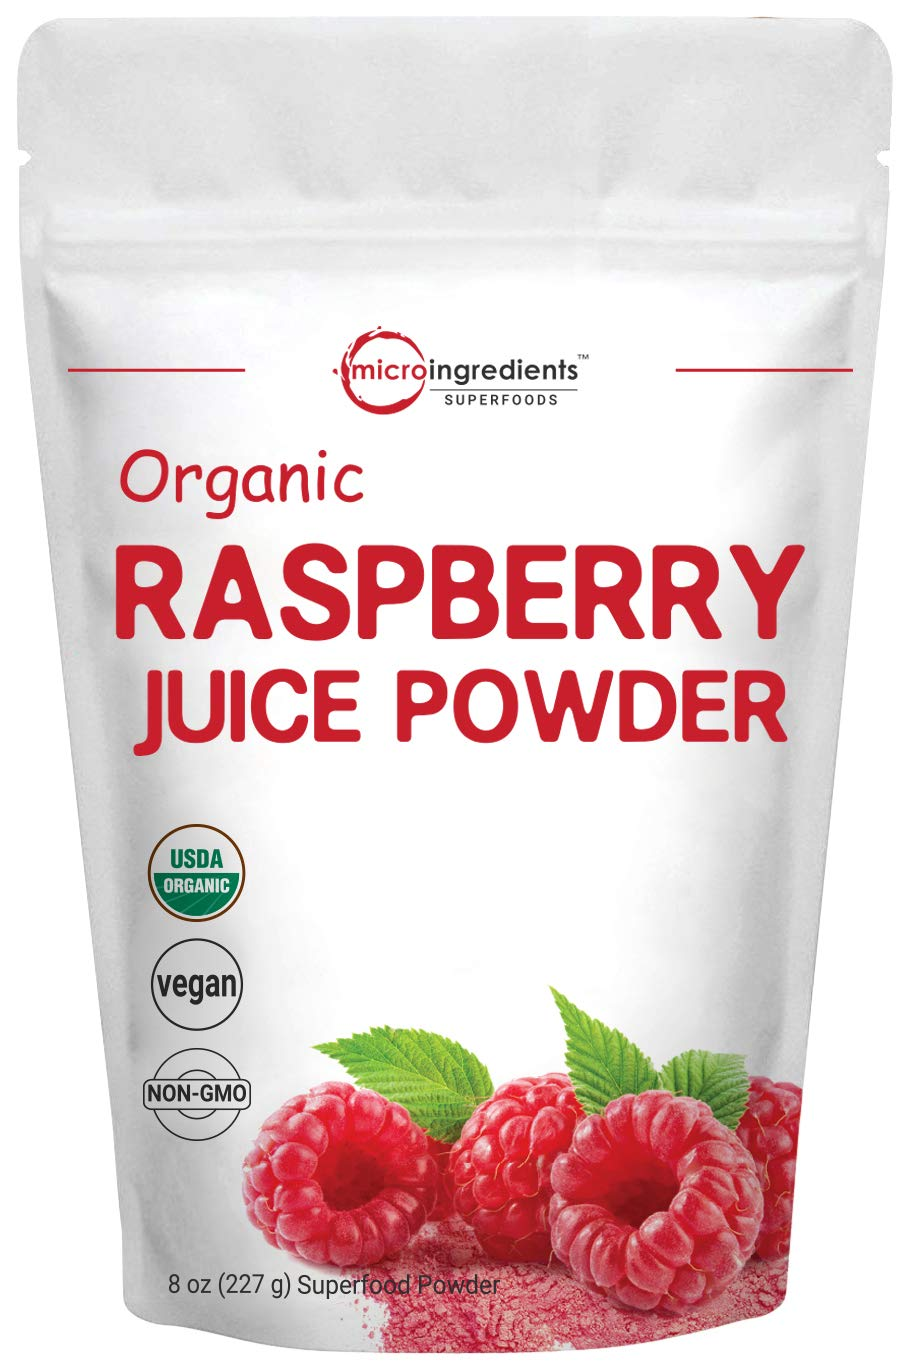 Sustainably US Grown, Organic Freeze Dried Raspberry Juice Powder, 8 Ounce, Containers Immune Vitamin C for Immune System Booster, Rich Fatty Acids, Minerals and Antioxidant, Vegan Friendly